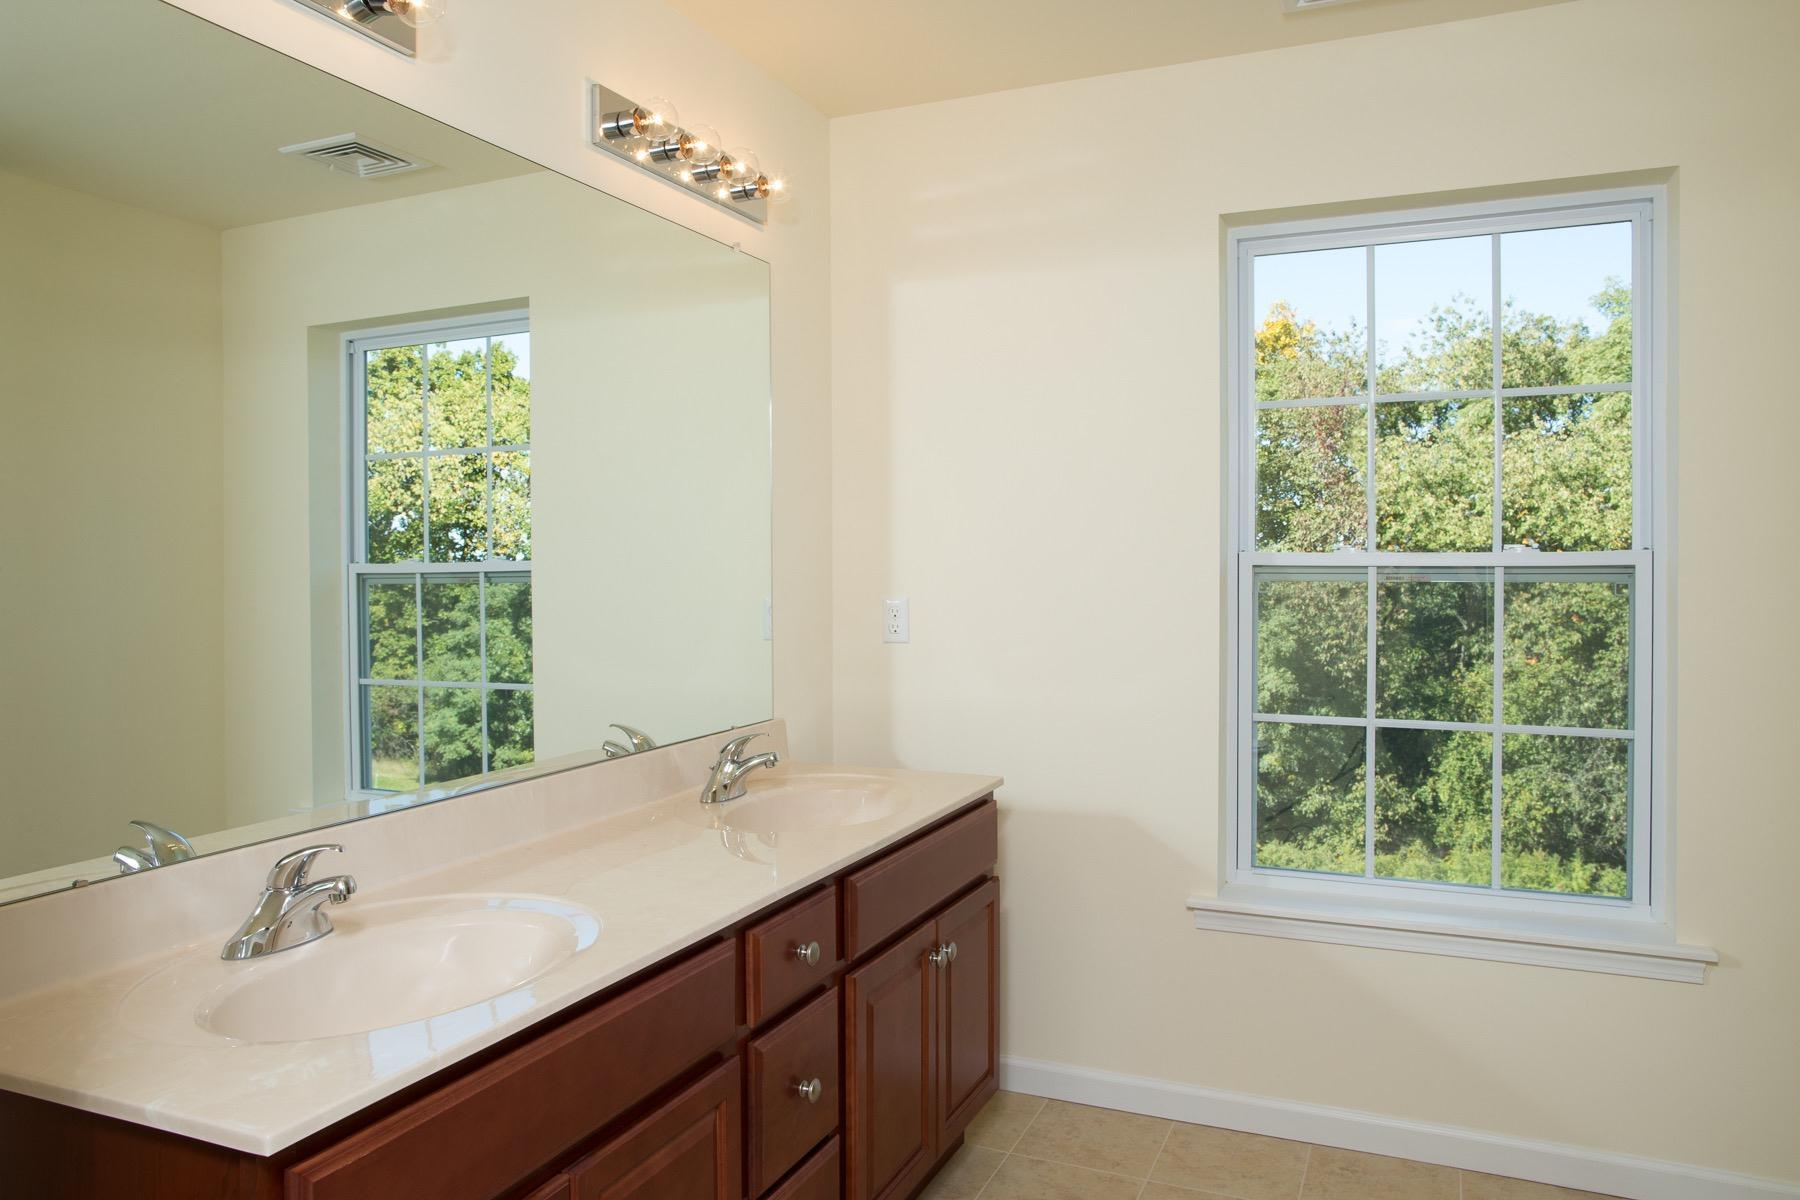 Bathroom featured in the Copake-The Estates By Sleight Farm at LaGrange in Dutchess County, NY